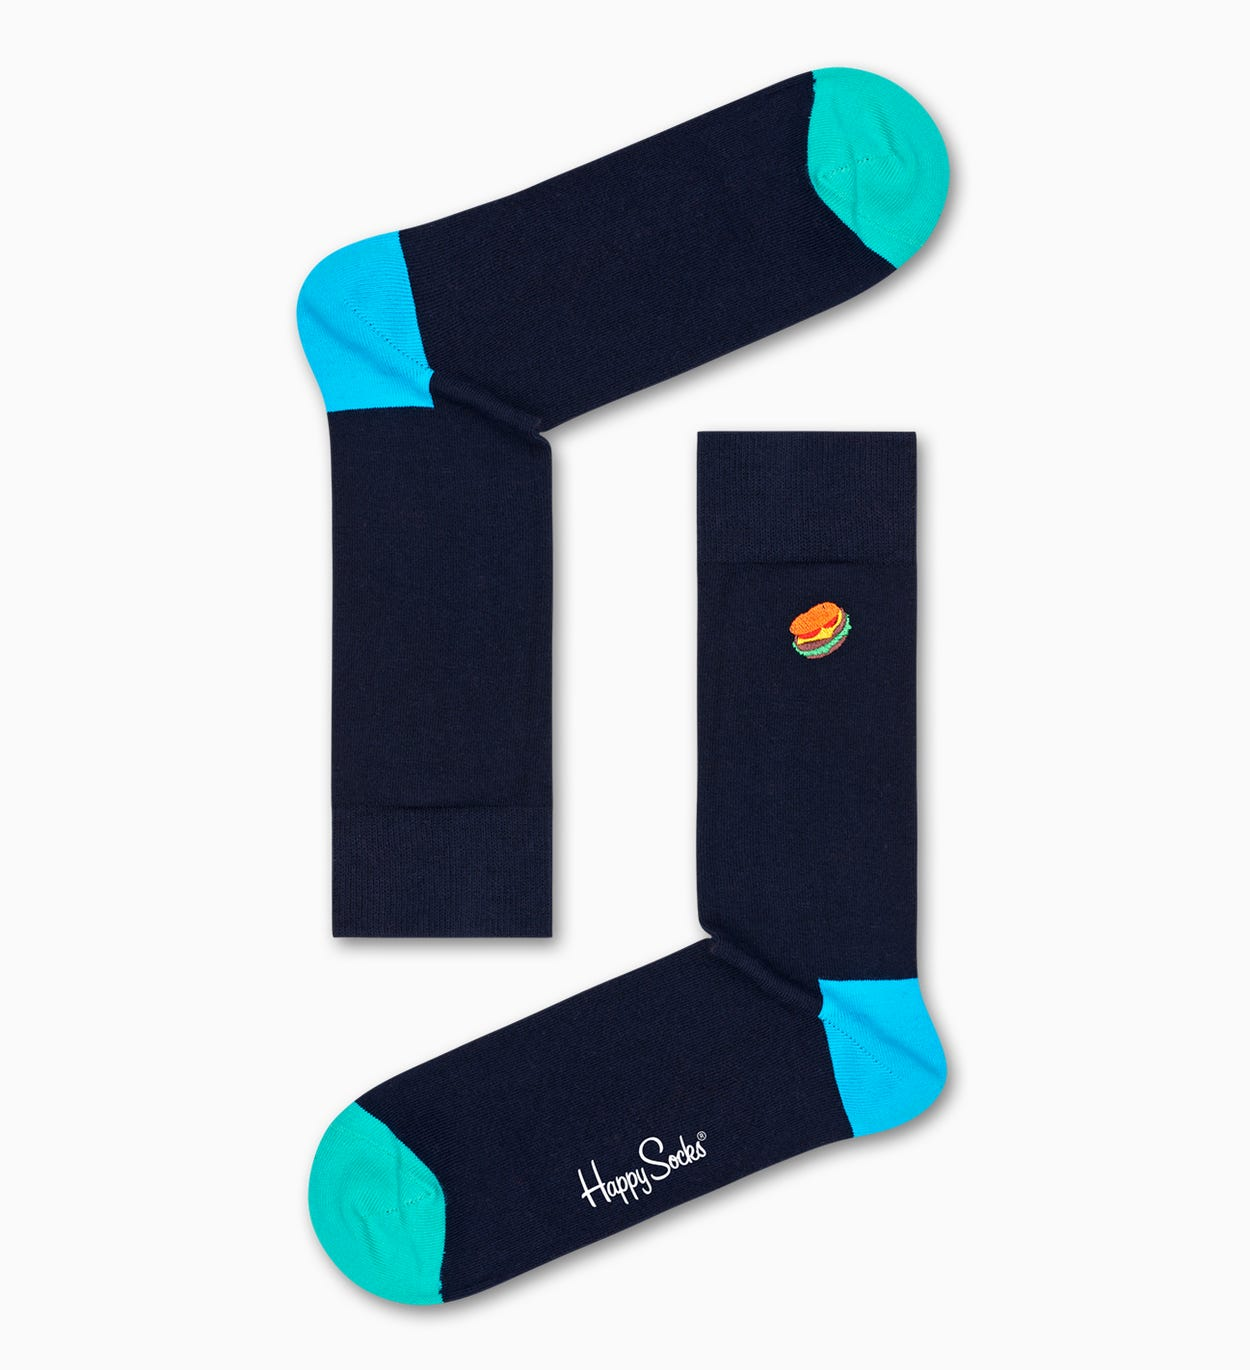 Embroidery Hamburger Socks, Black | Happy Socks